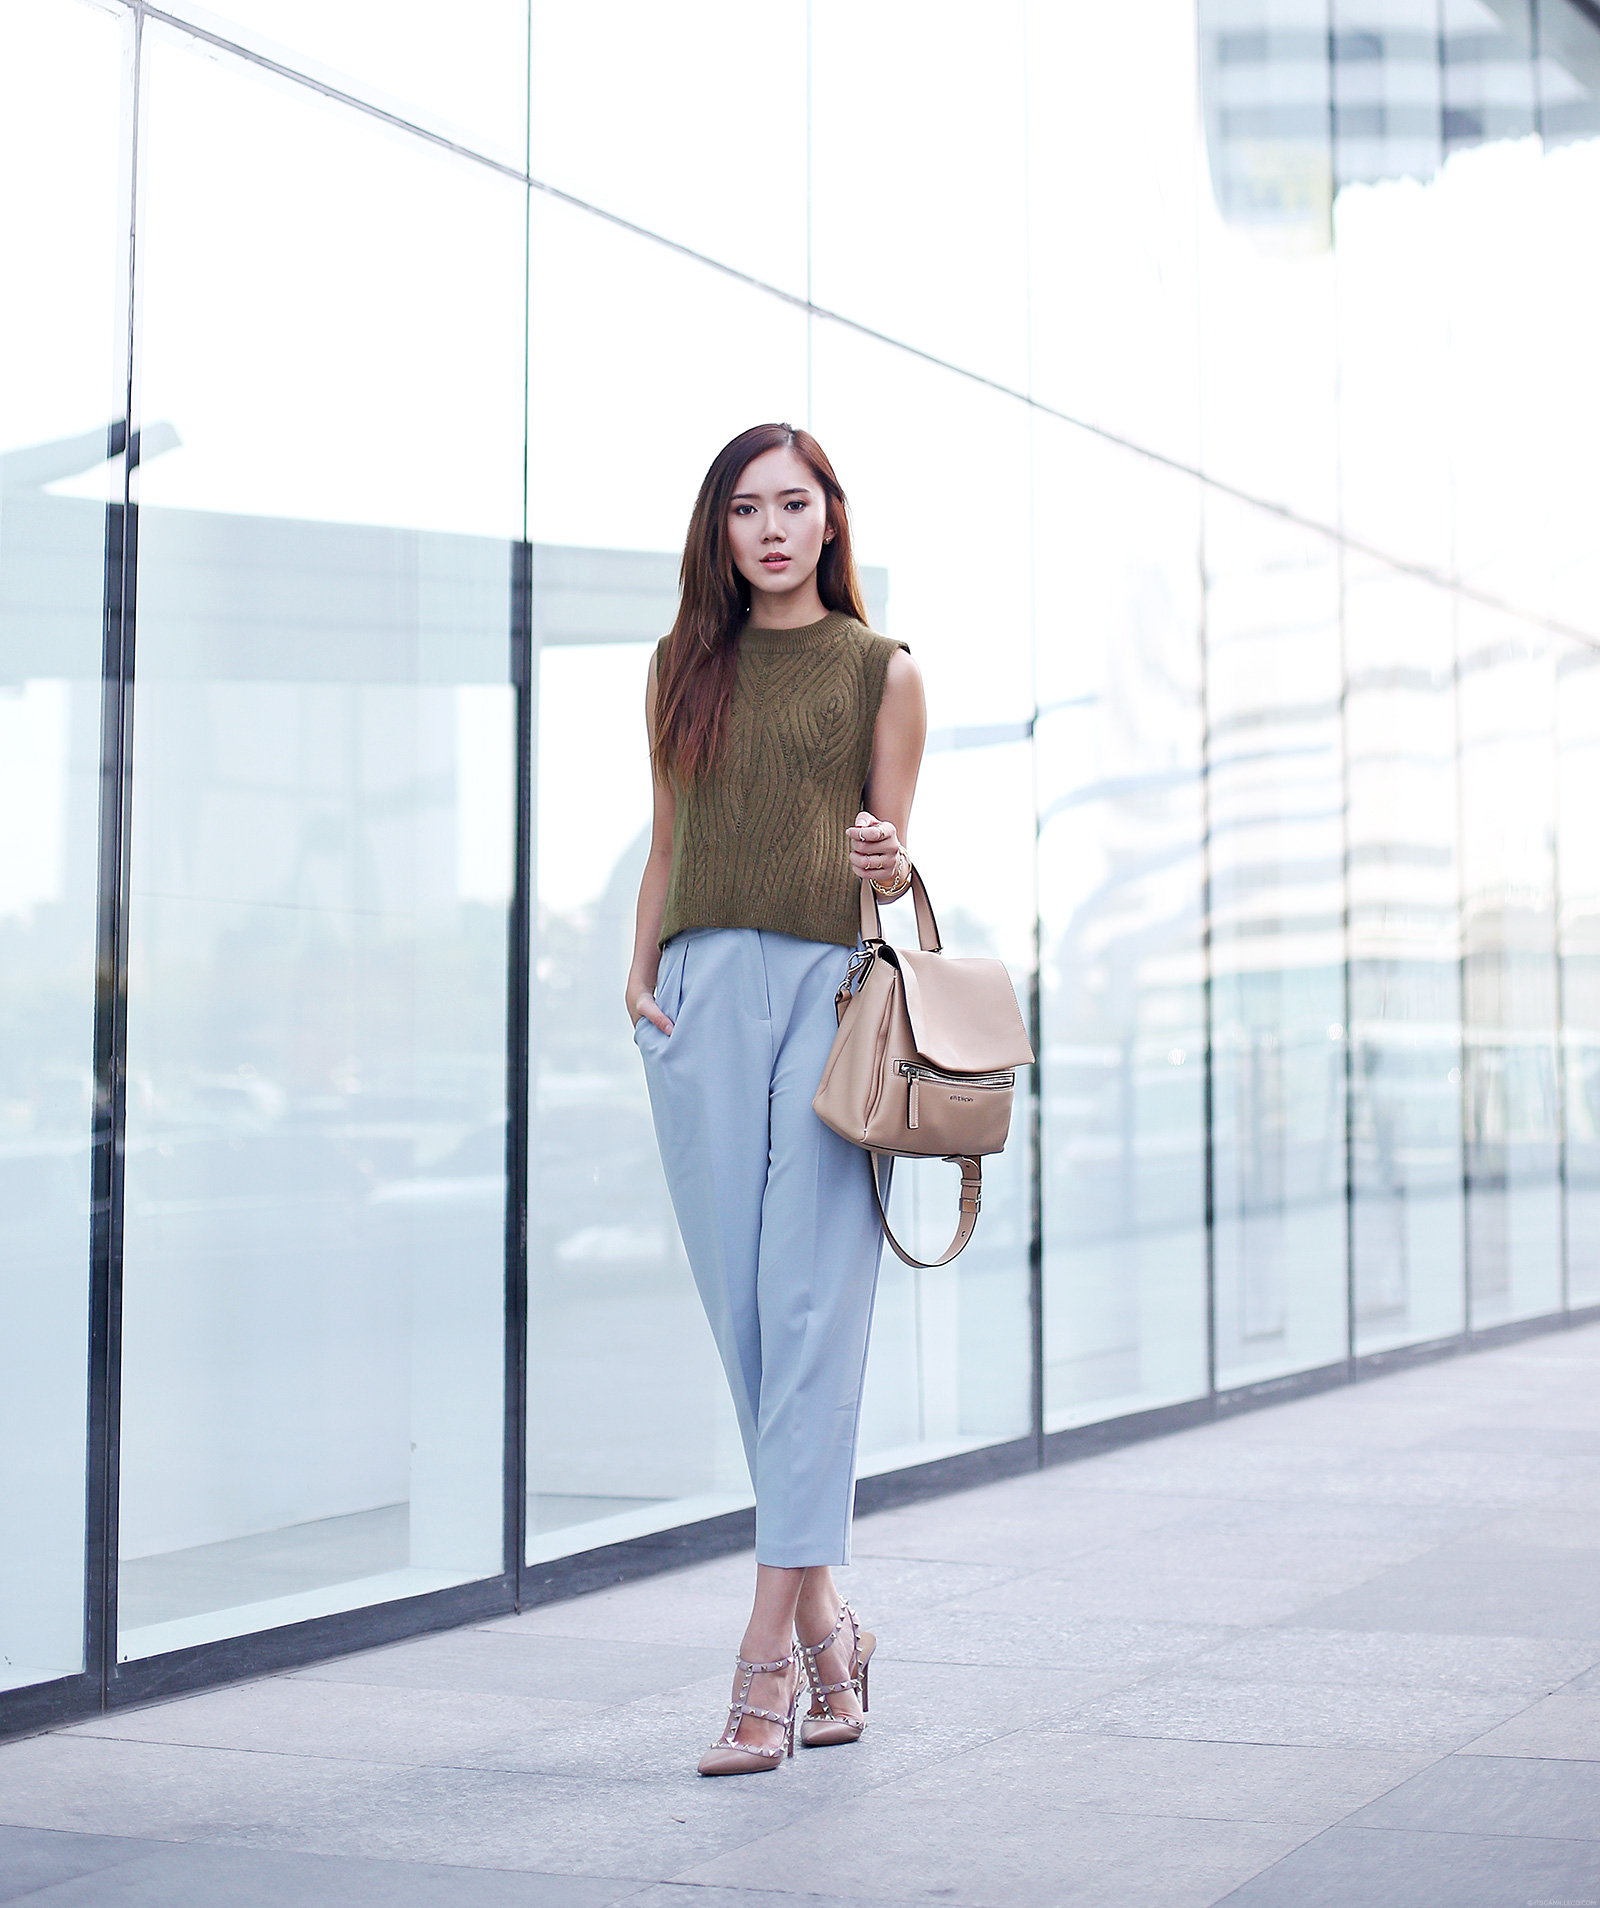 Fablo top, Topshop pants, Valentino, Givenchy | www.itscamilleco.com